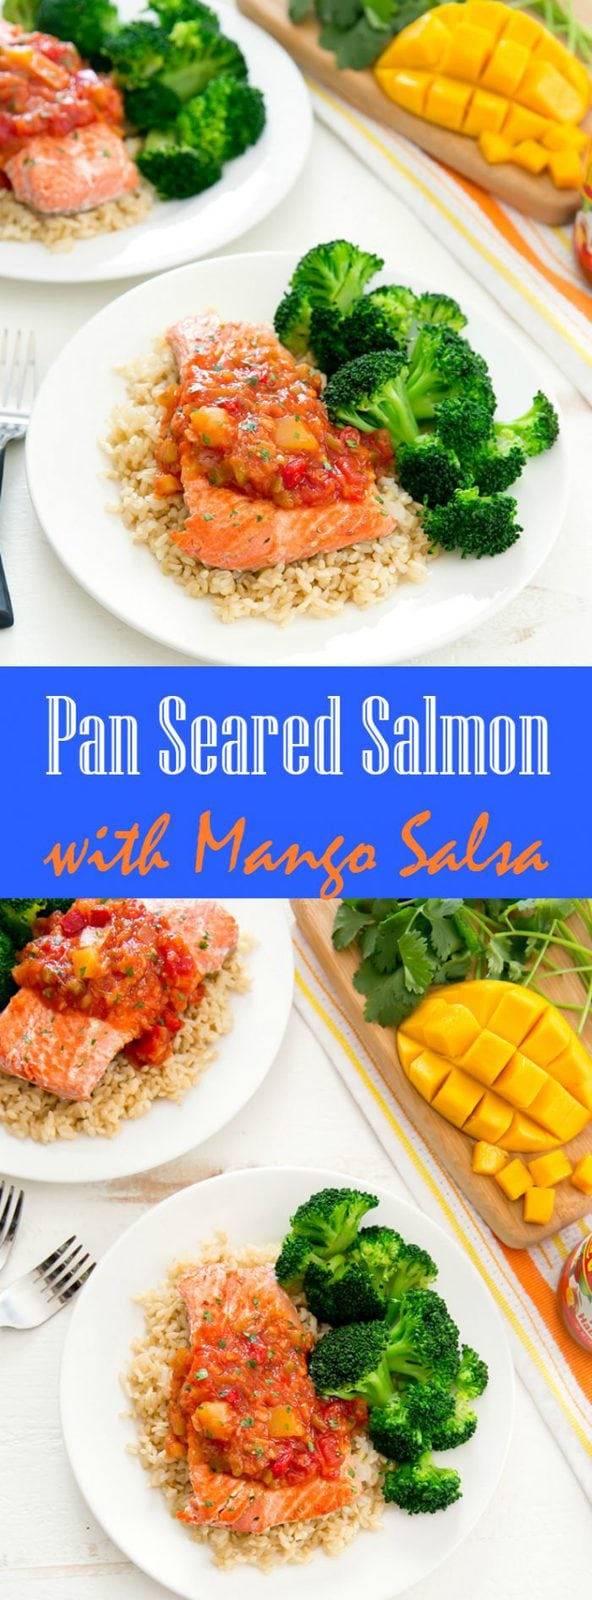 Pan Seared Salmon with Mango Salsa